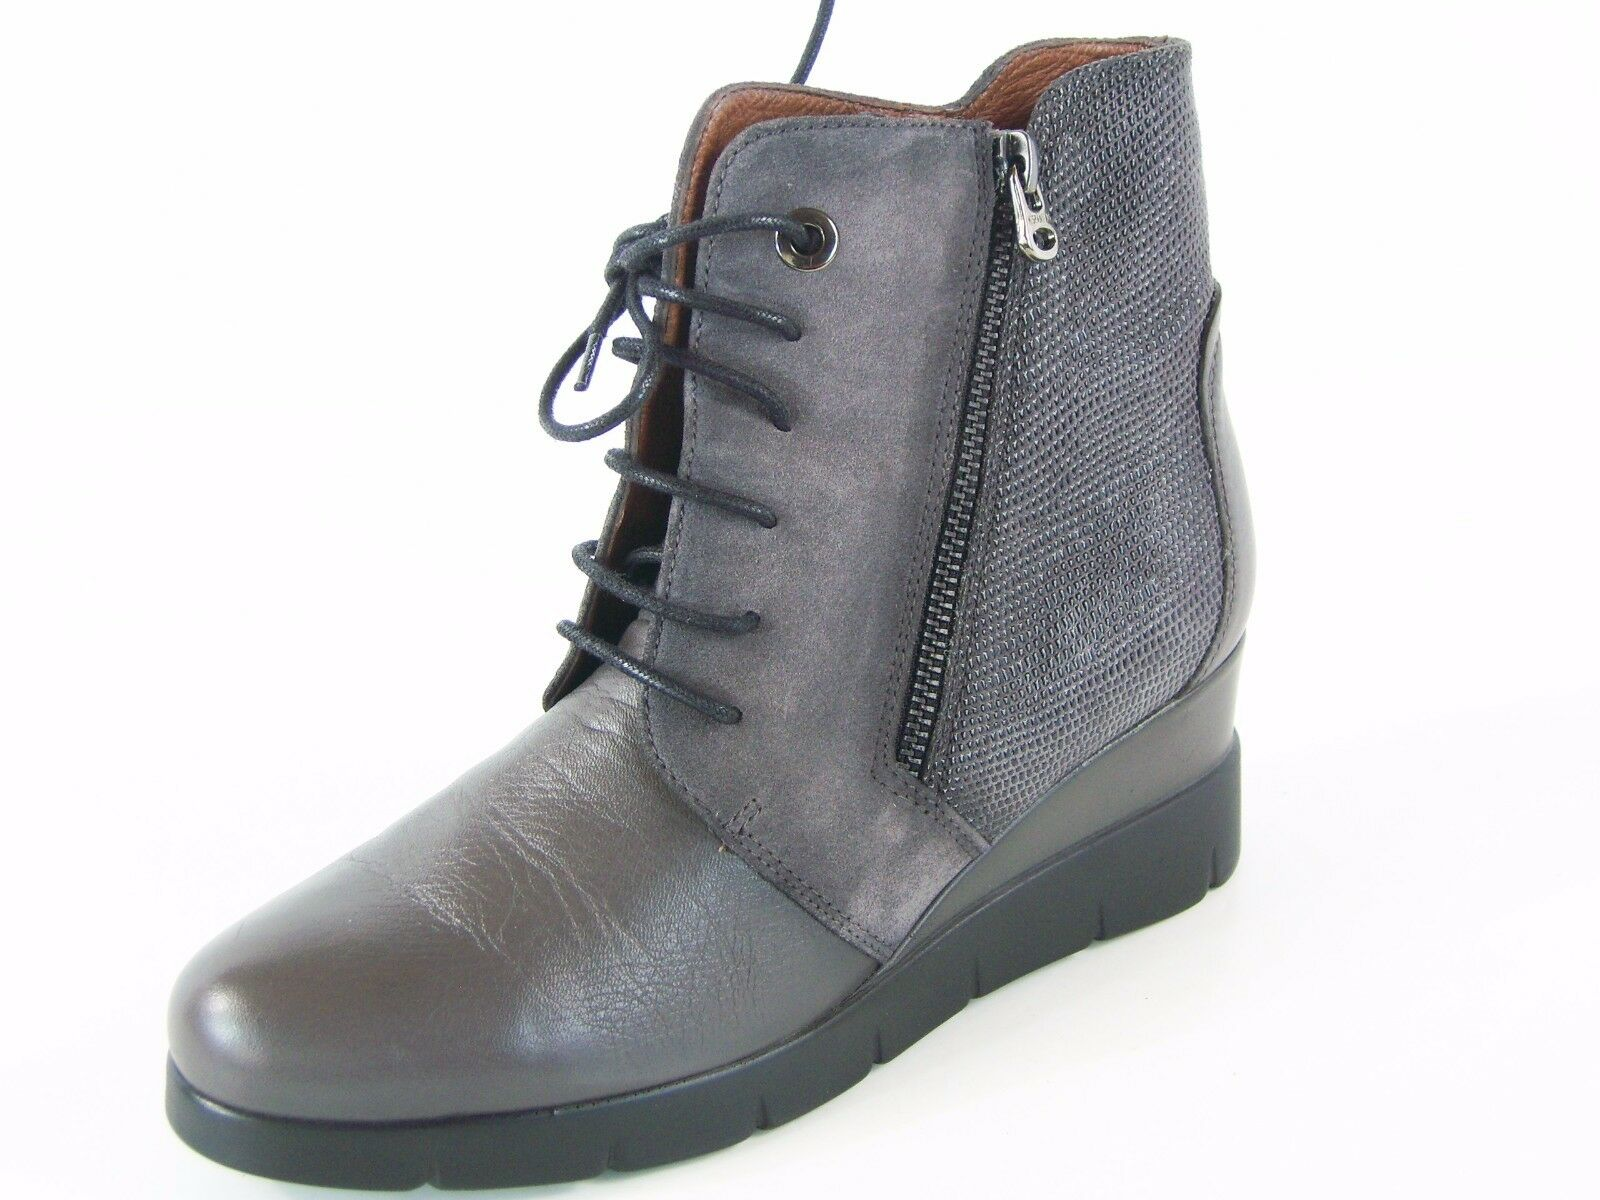 Hispanitas Lydia Women's Ankle Boot - Grey - Sz 6 M; 36 EU